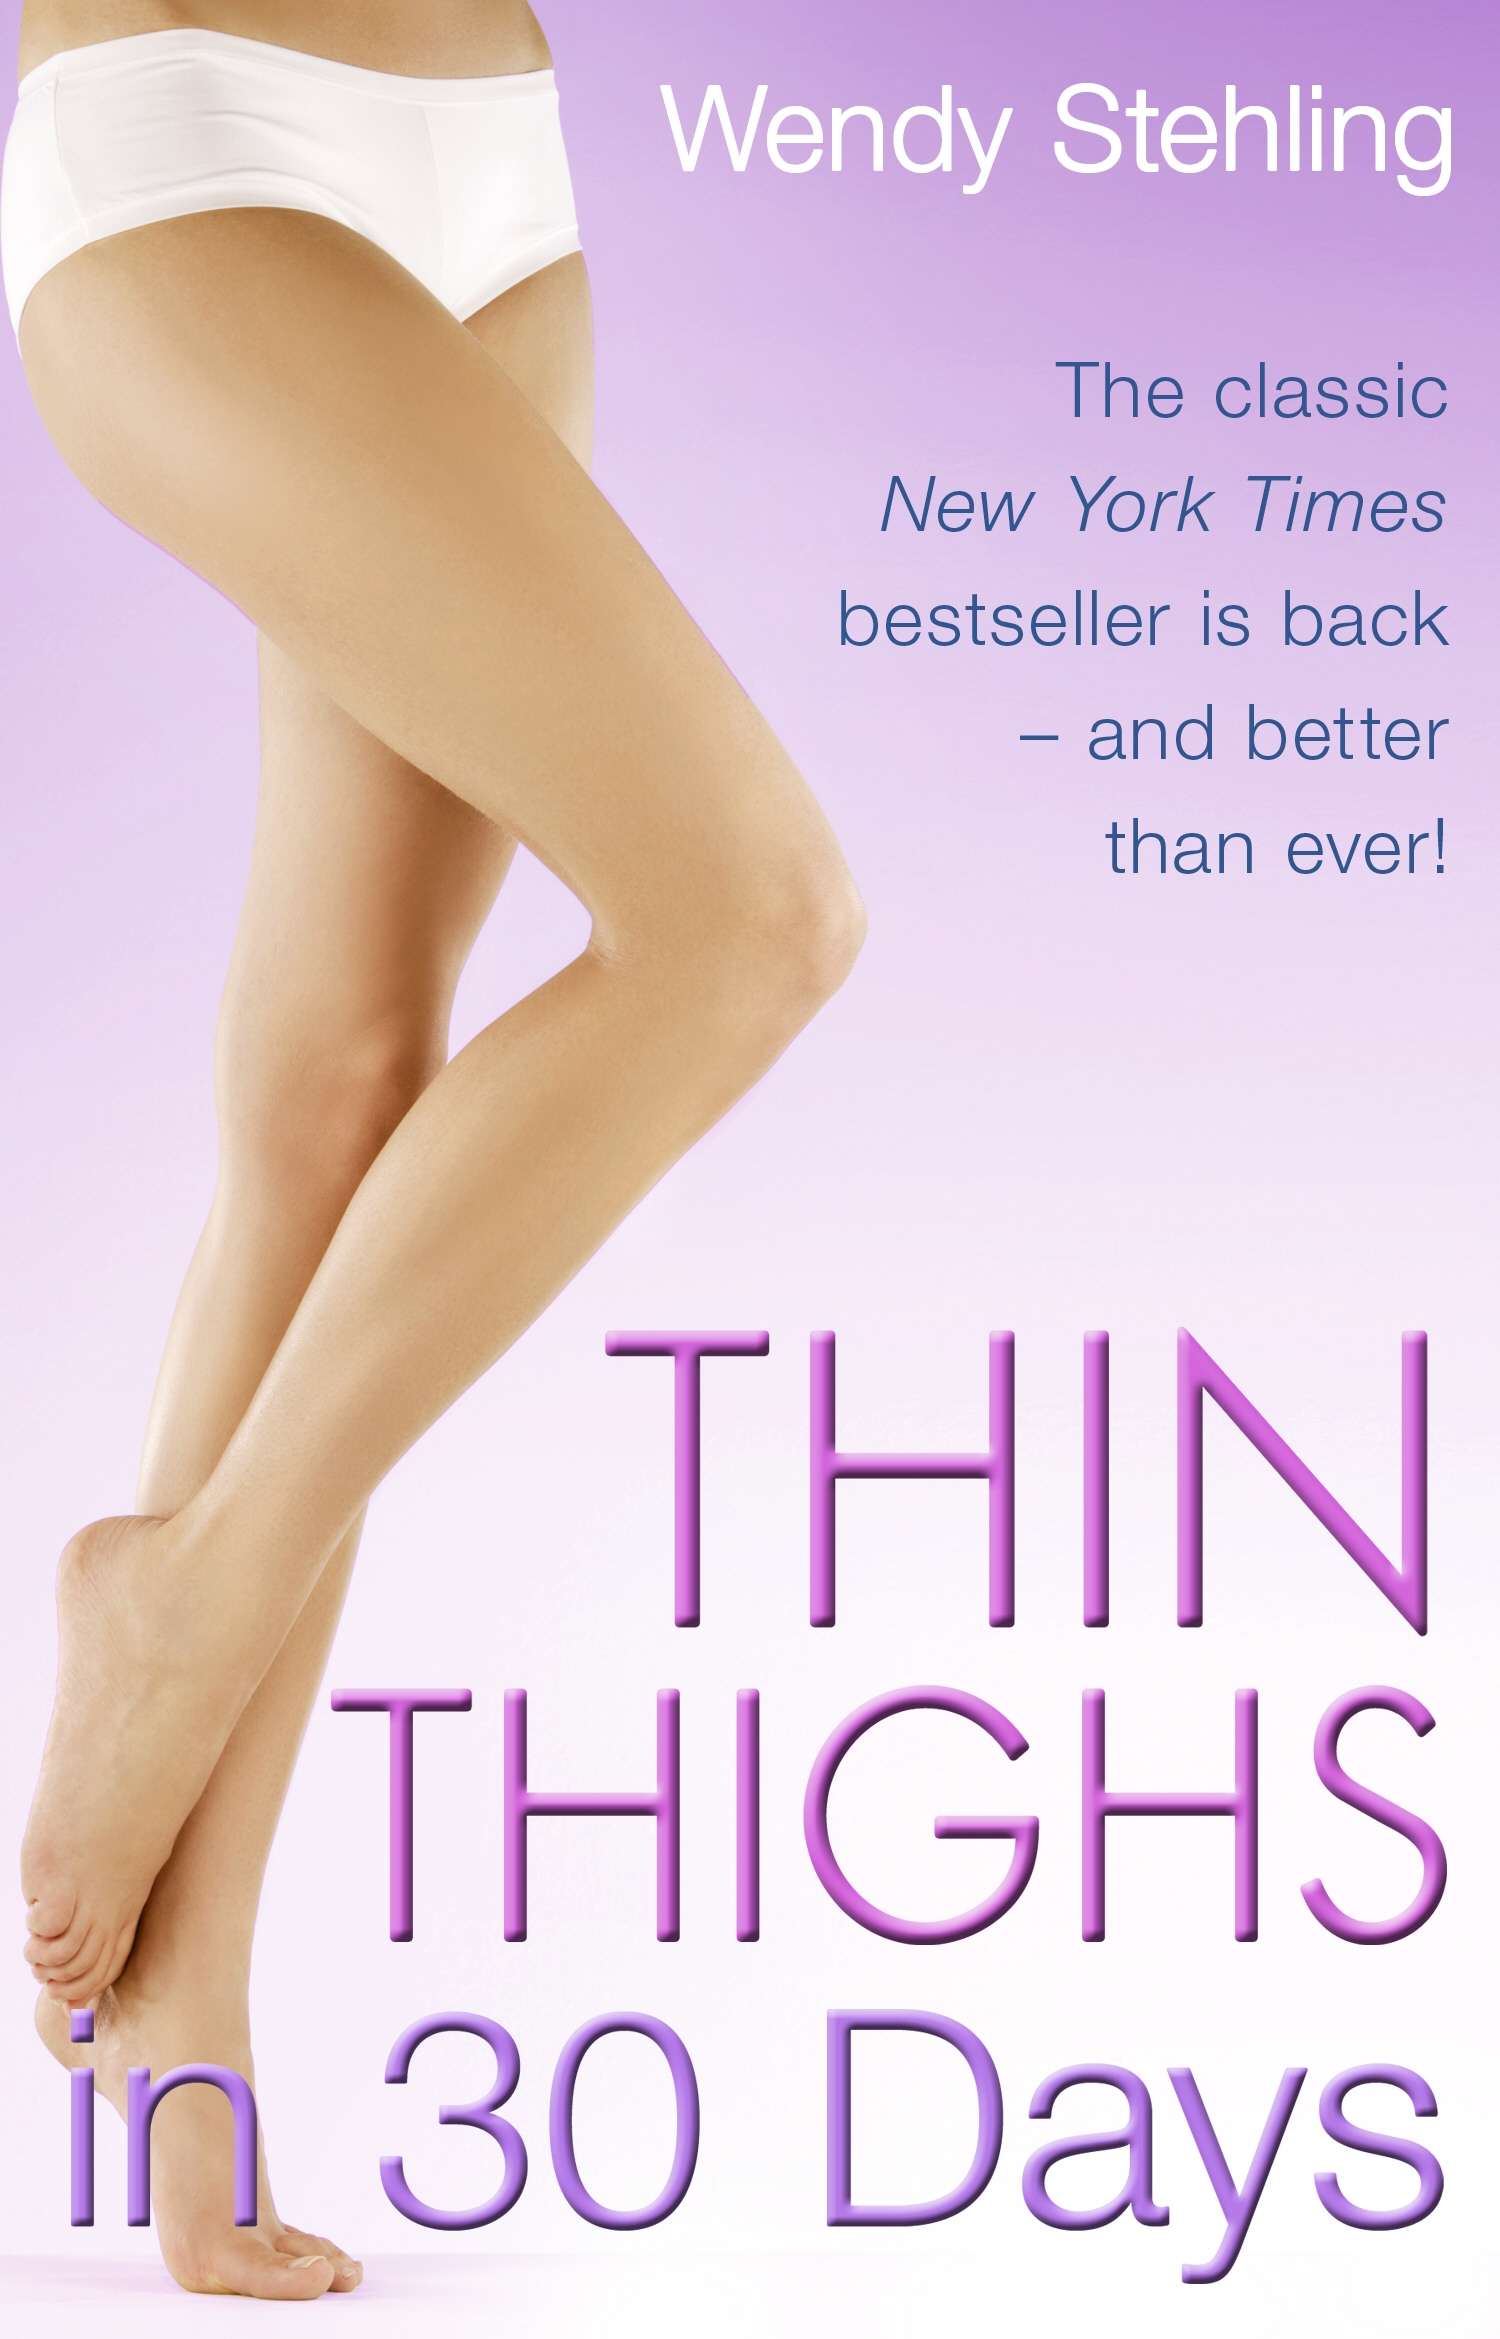 Thin thighs in 30 days by wendy stehling penguin books australia thin thighs in 30 days fandeluxe Gallery